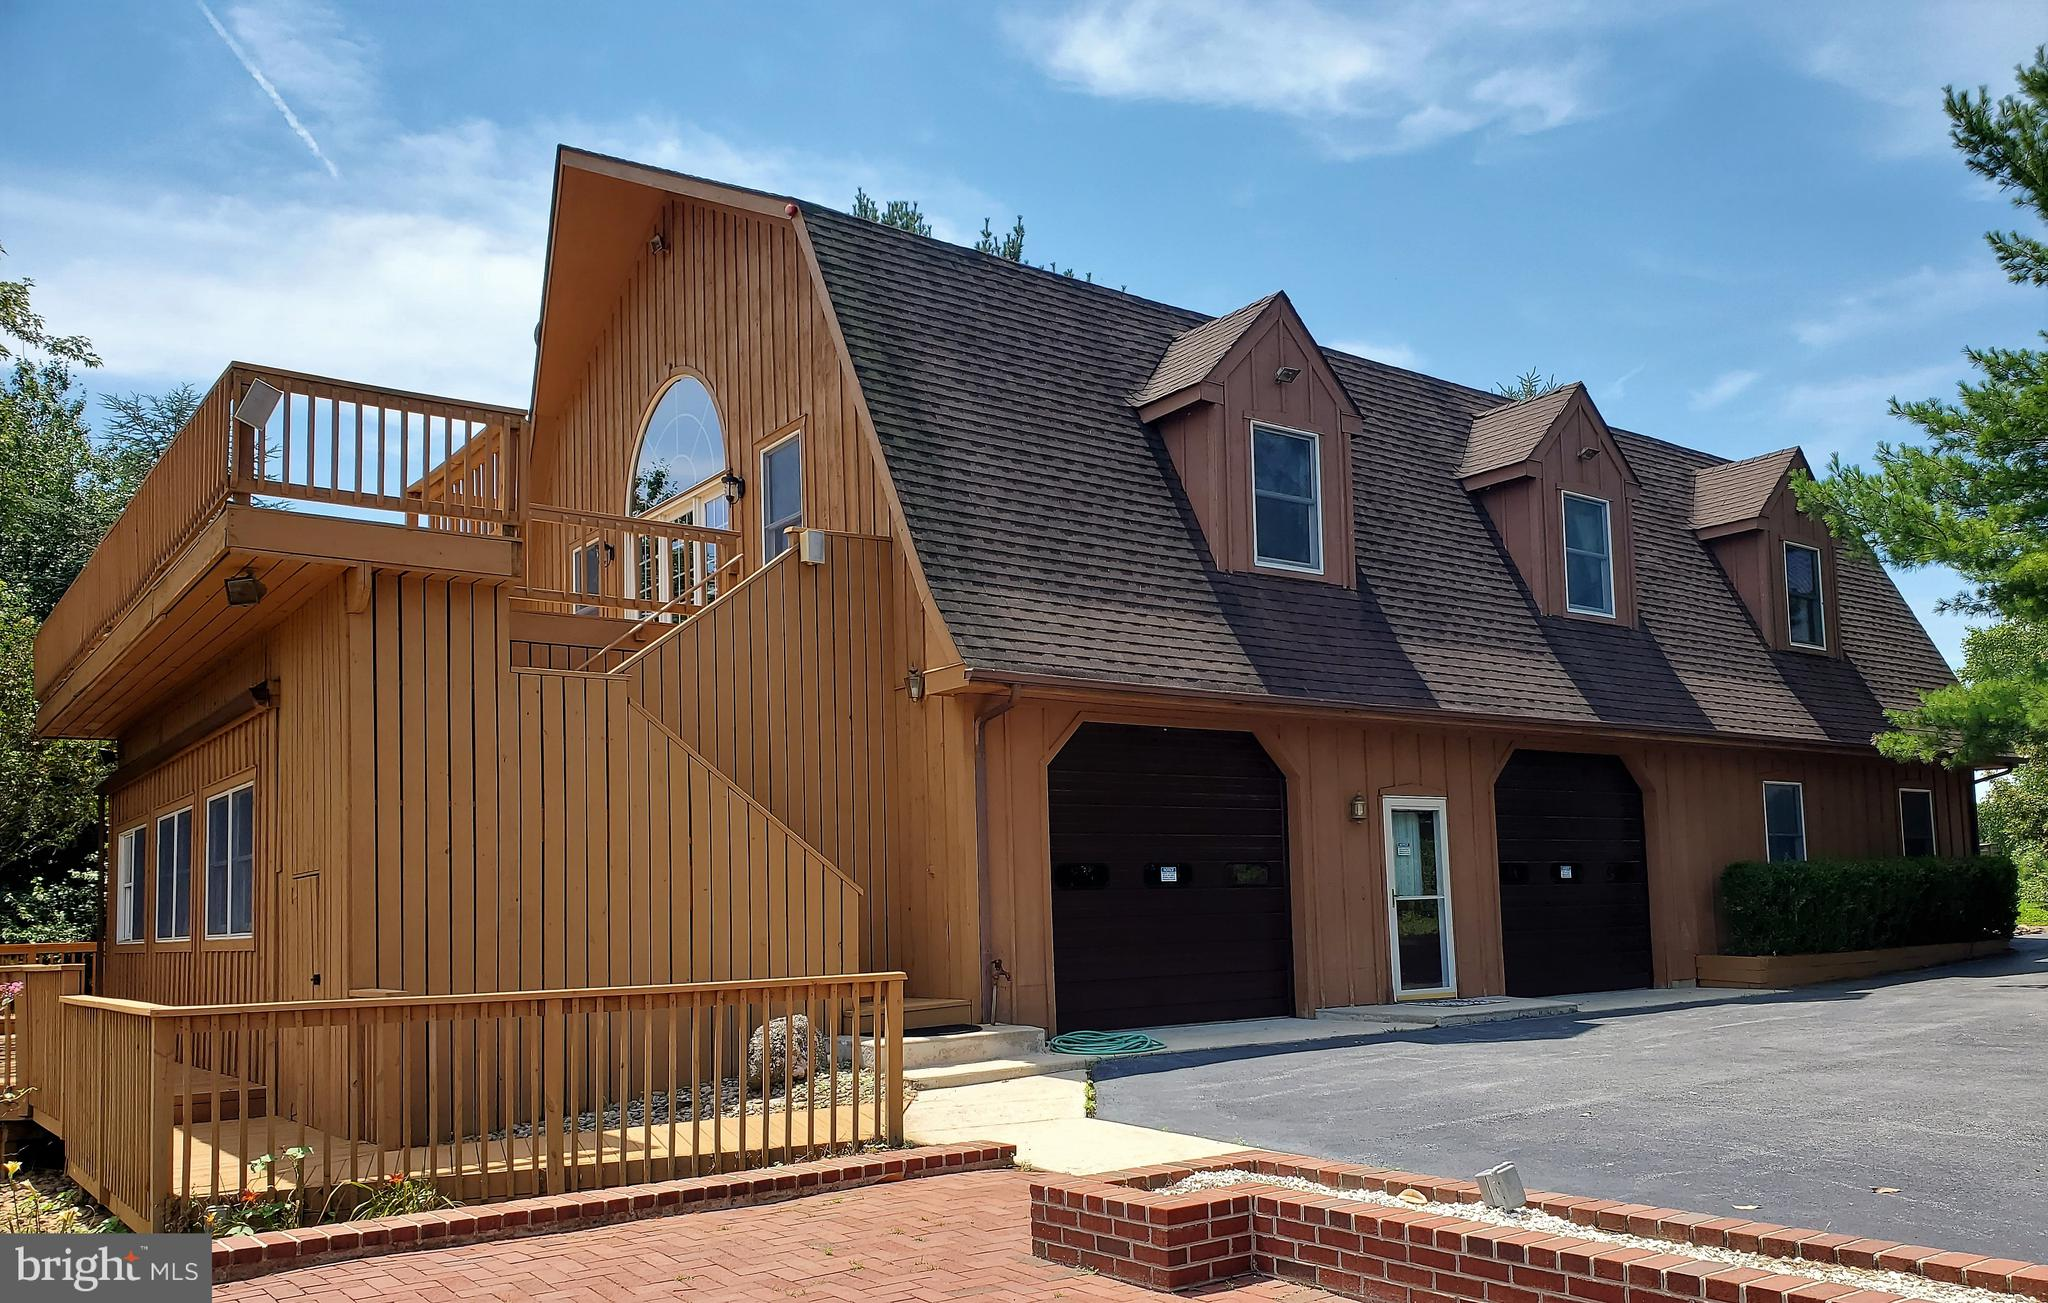 Visit this home virtually: http://www.vht.com/434089292/IDXS - Now is your chance to own this custom built house along with 2 separate parcels of land that are all ready to go as a package deal!  See DENC509452 & DENC509454. Contact listing agent for more information.